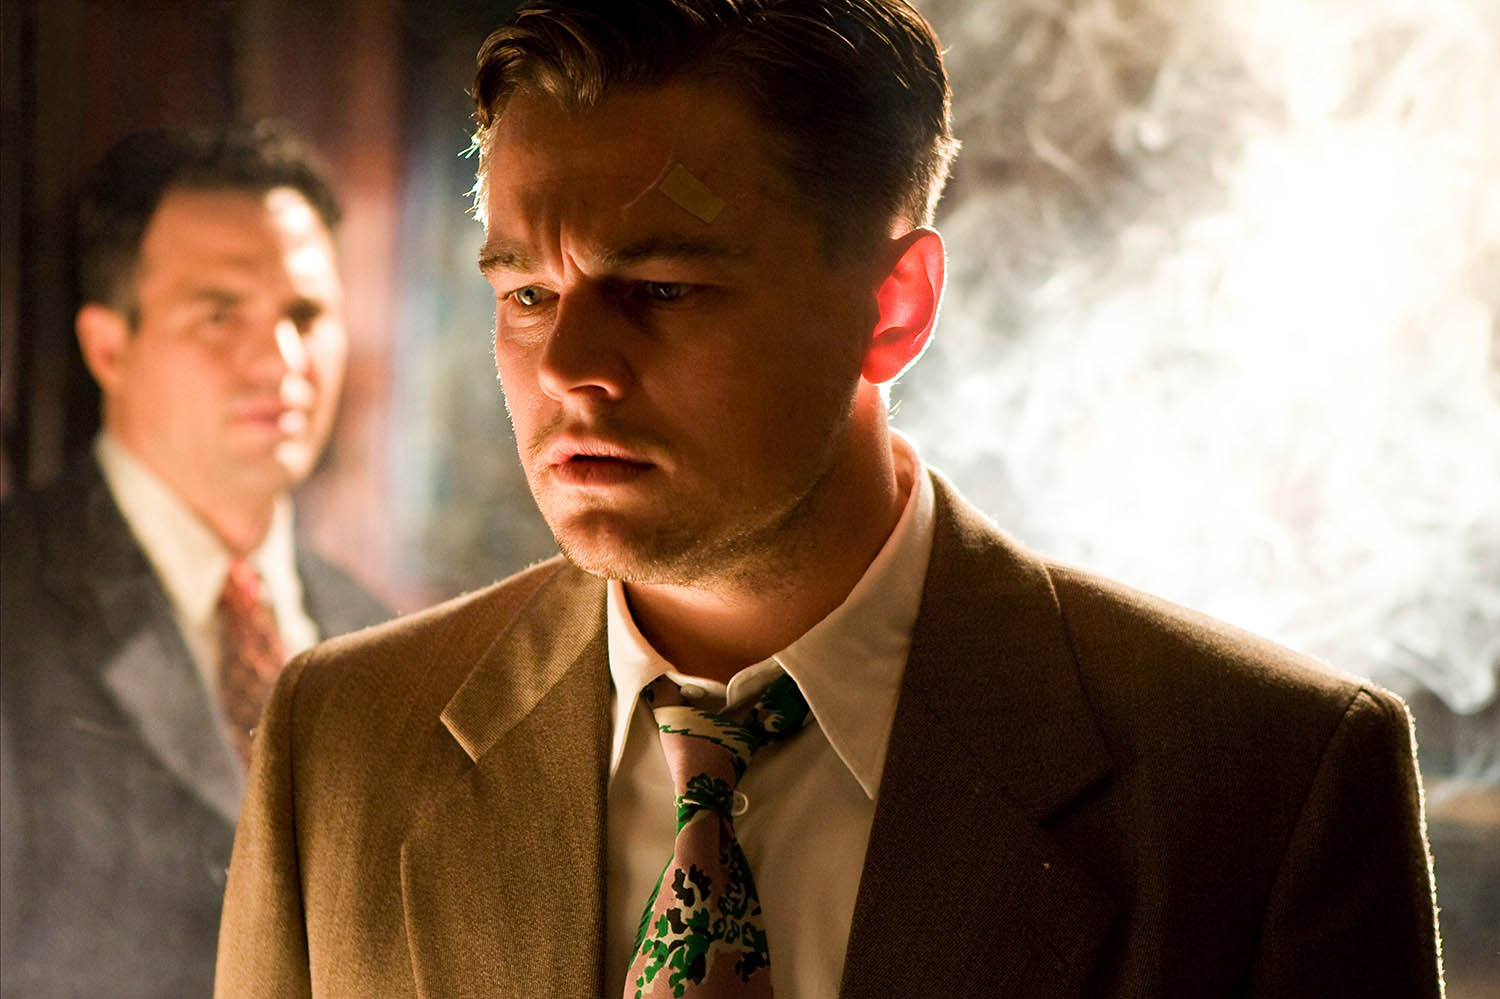 Understanding Screenwriting #43: Shutter Island, The Ghost Writer, The Messenger, & More